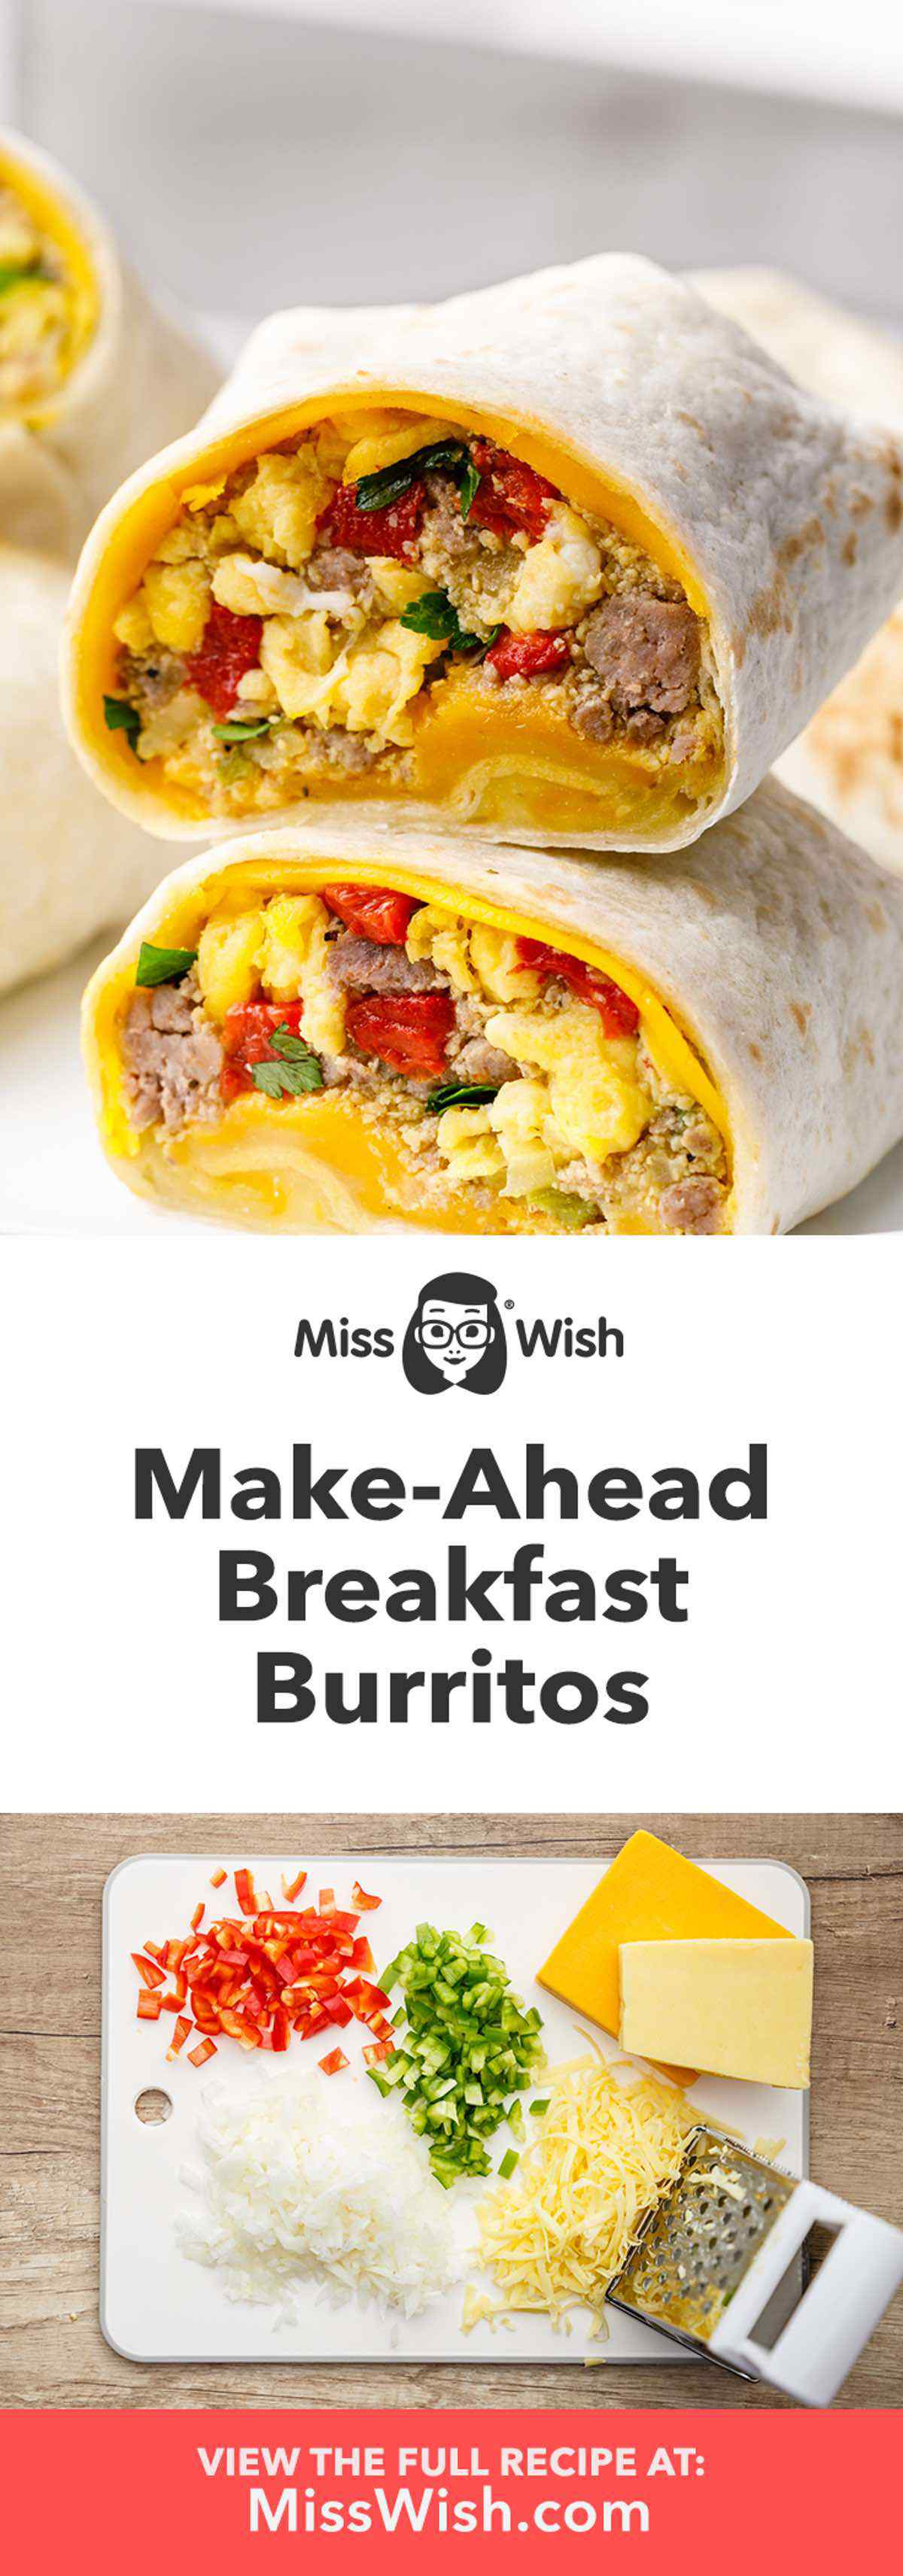 Quick and Easy Make-Ahead Breakfast Burritos